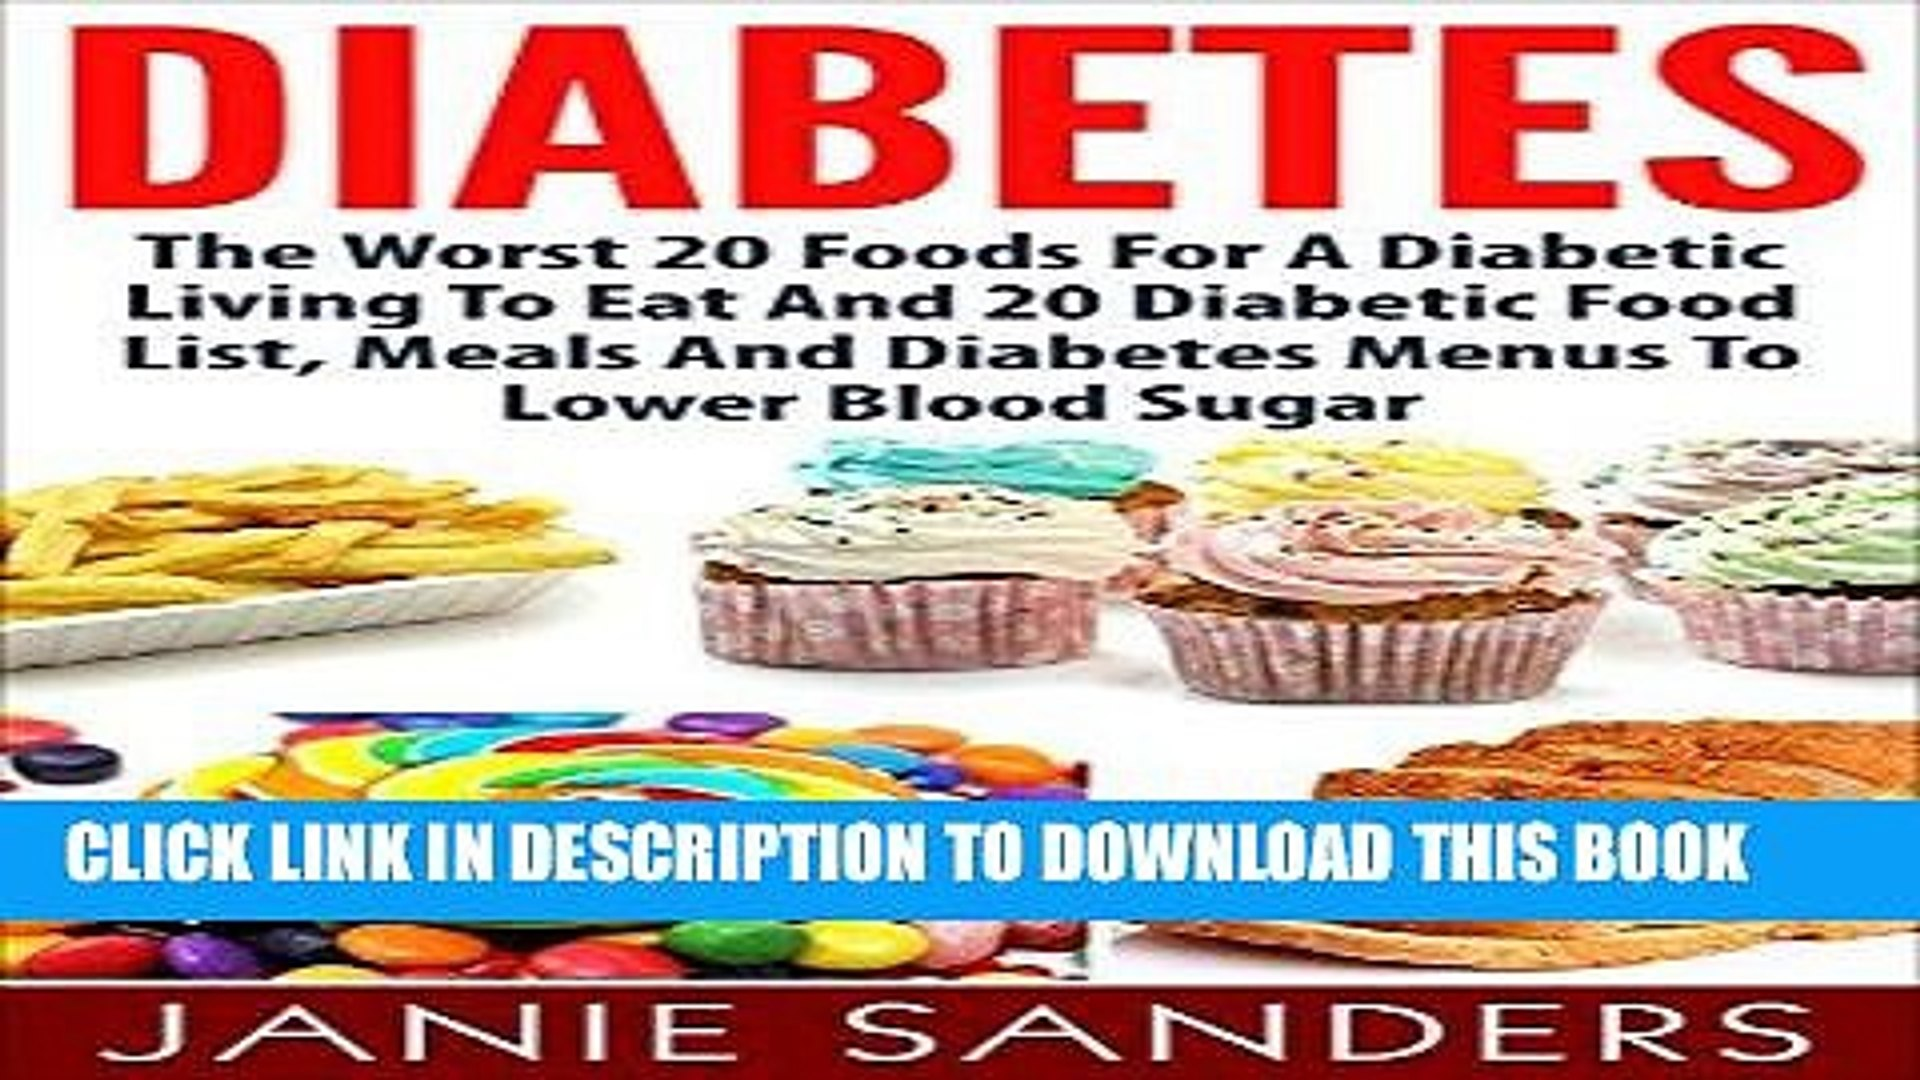 Read Now Diabetes The Worst 20 Foods For Diabetes To Eat And The